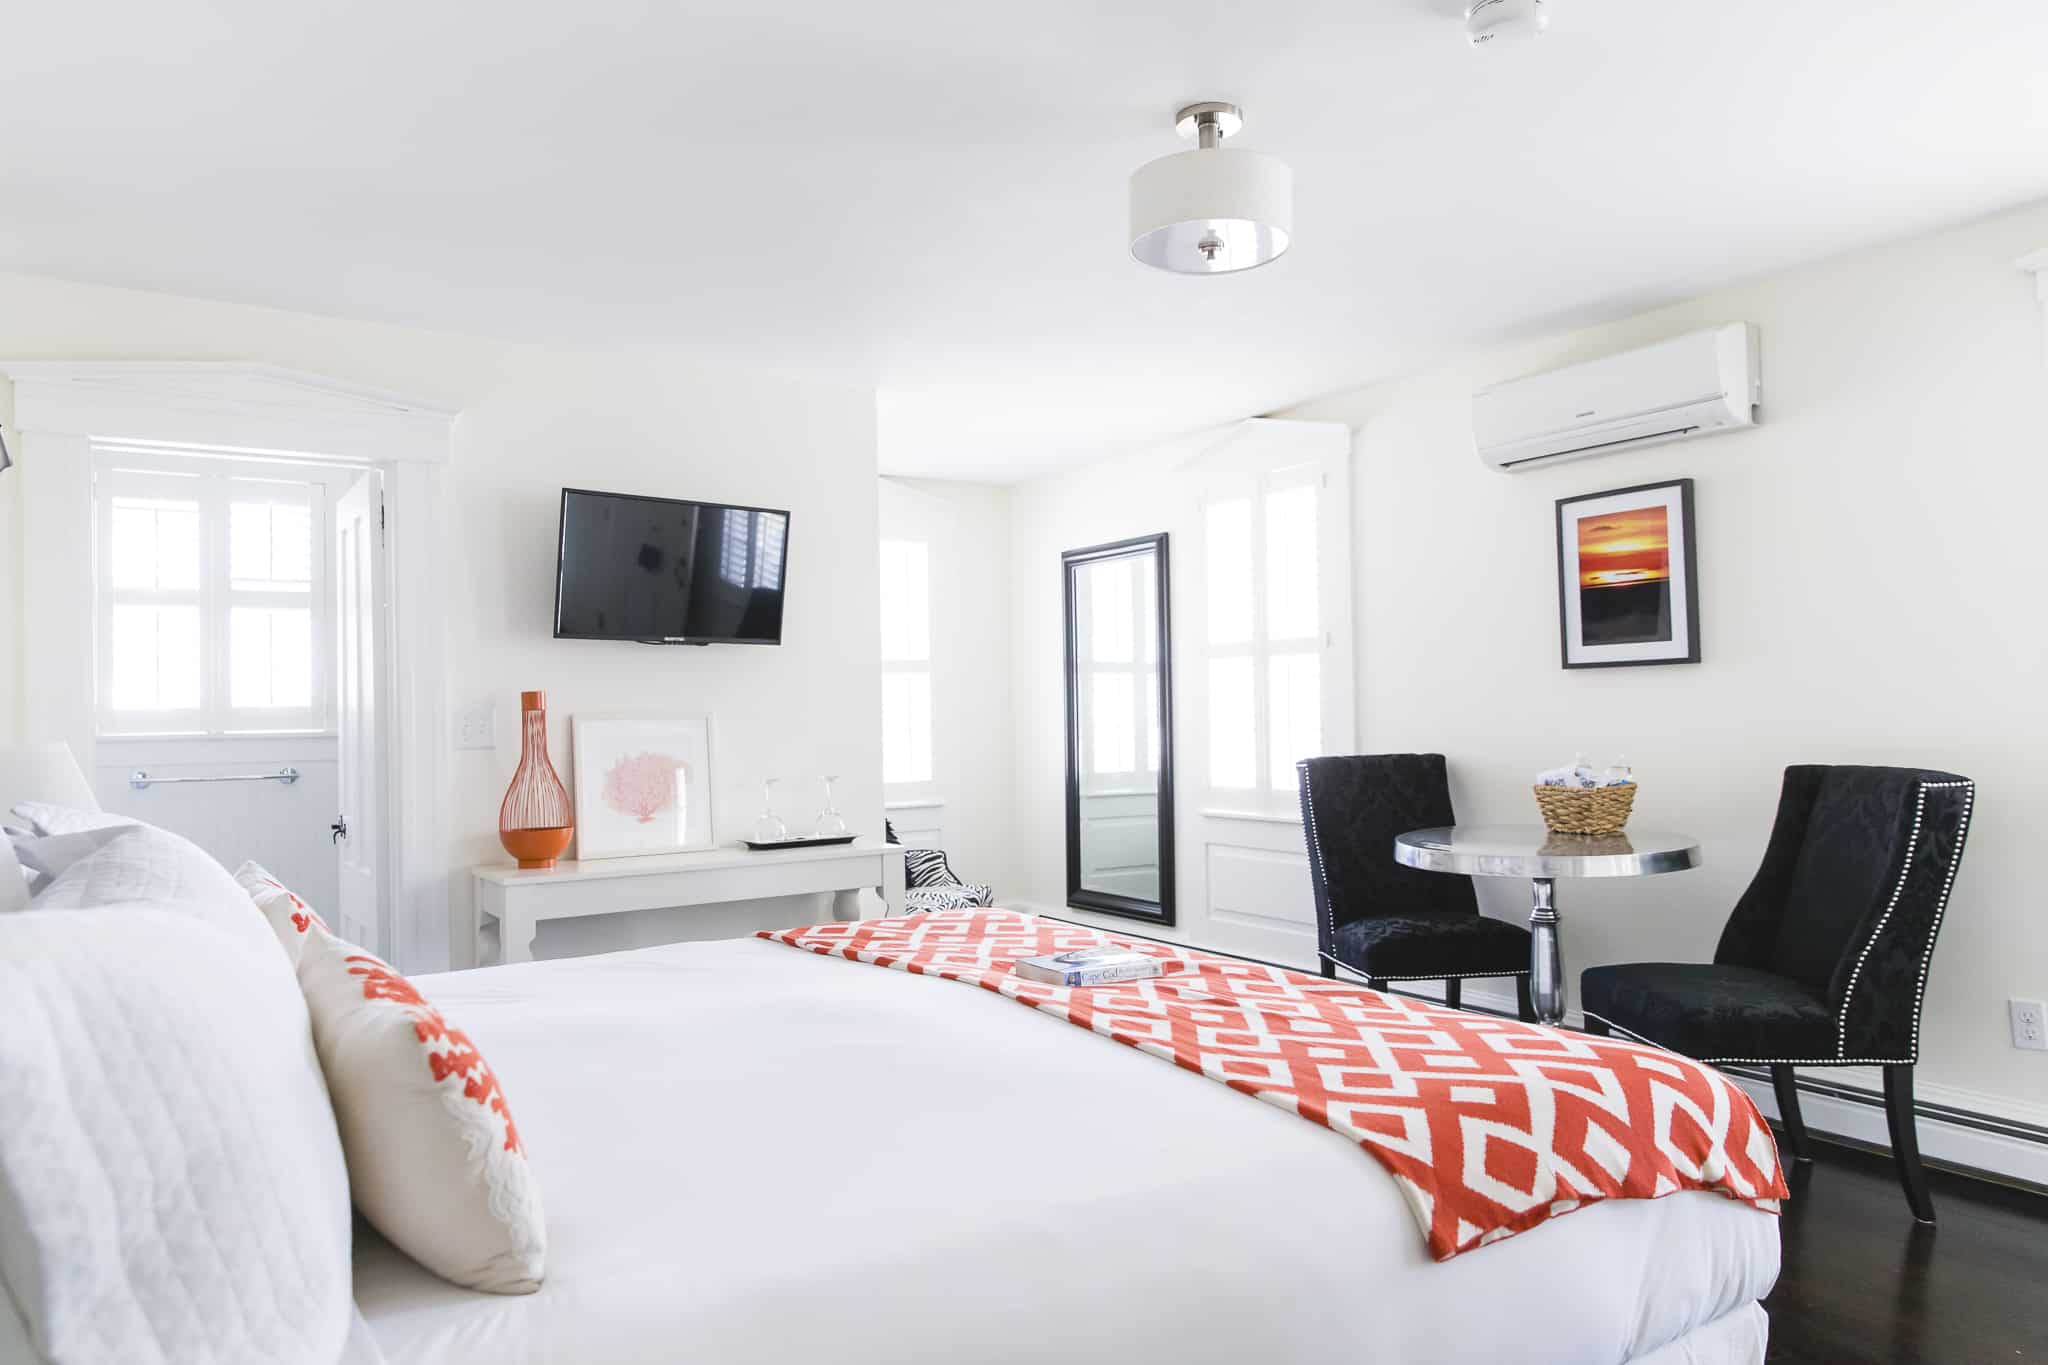 Deluxe room 2 the platinum pebble boutique inn for Luxury boutique bed and breakfast